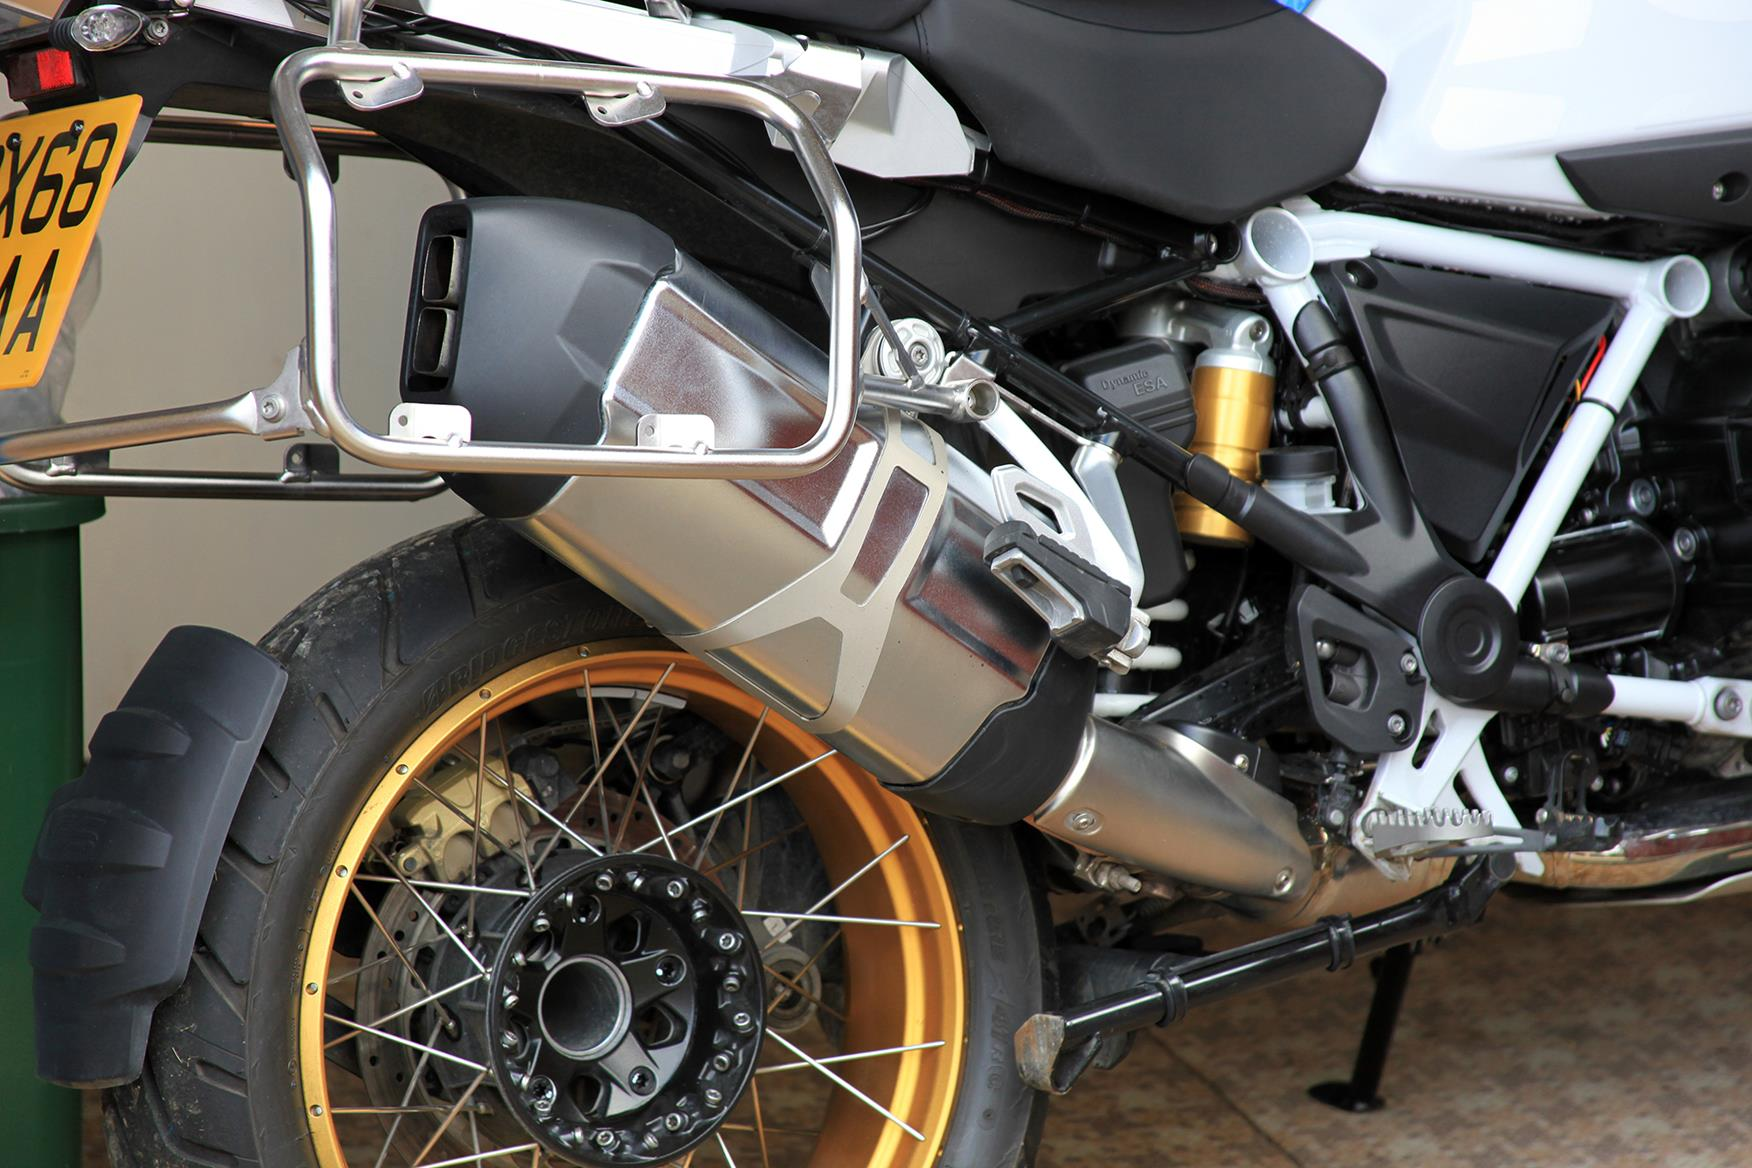 The standard BMW R1250GS Adventure exhaust